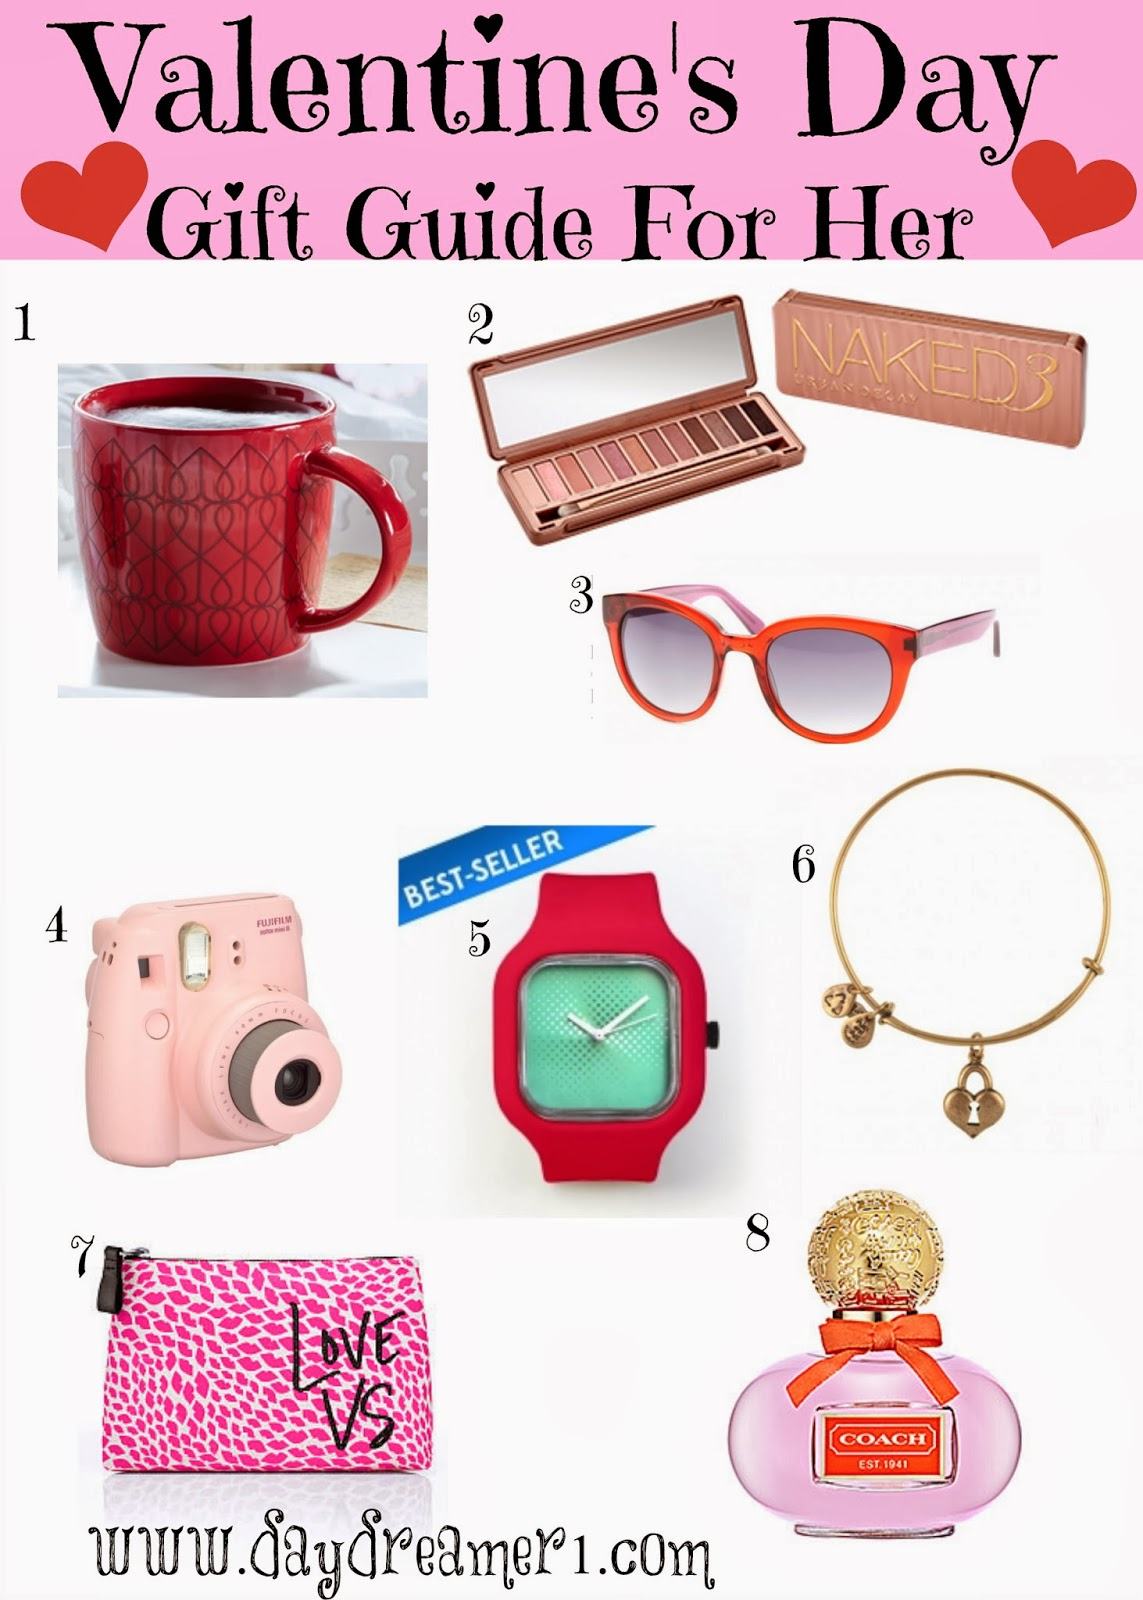 Valentine's Day Gift Ideas For Her - Day Dreamer